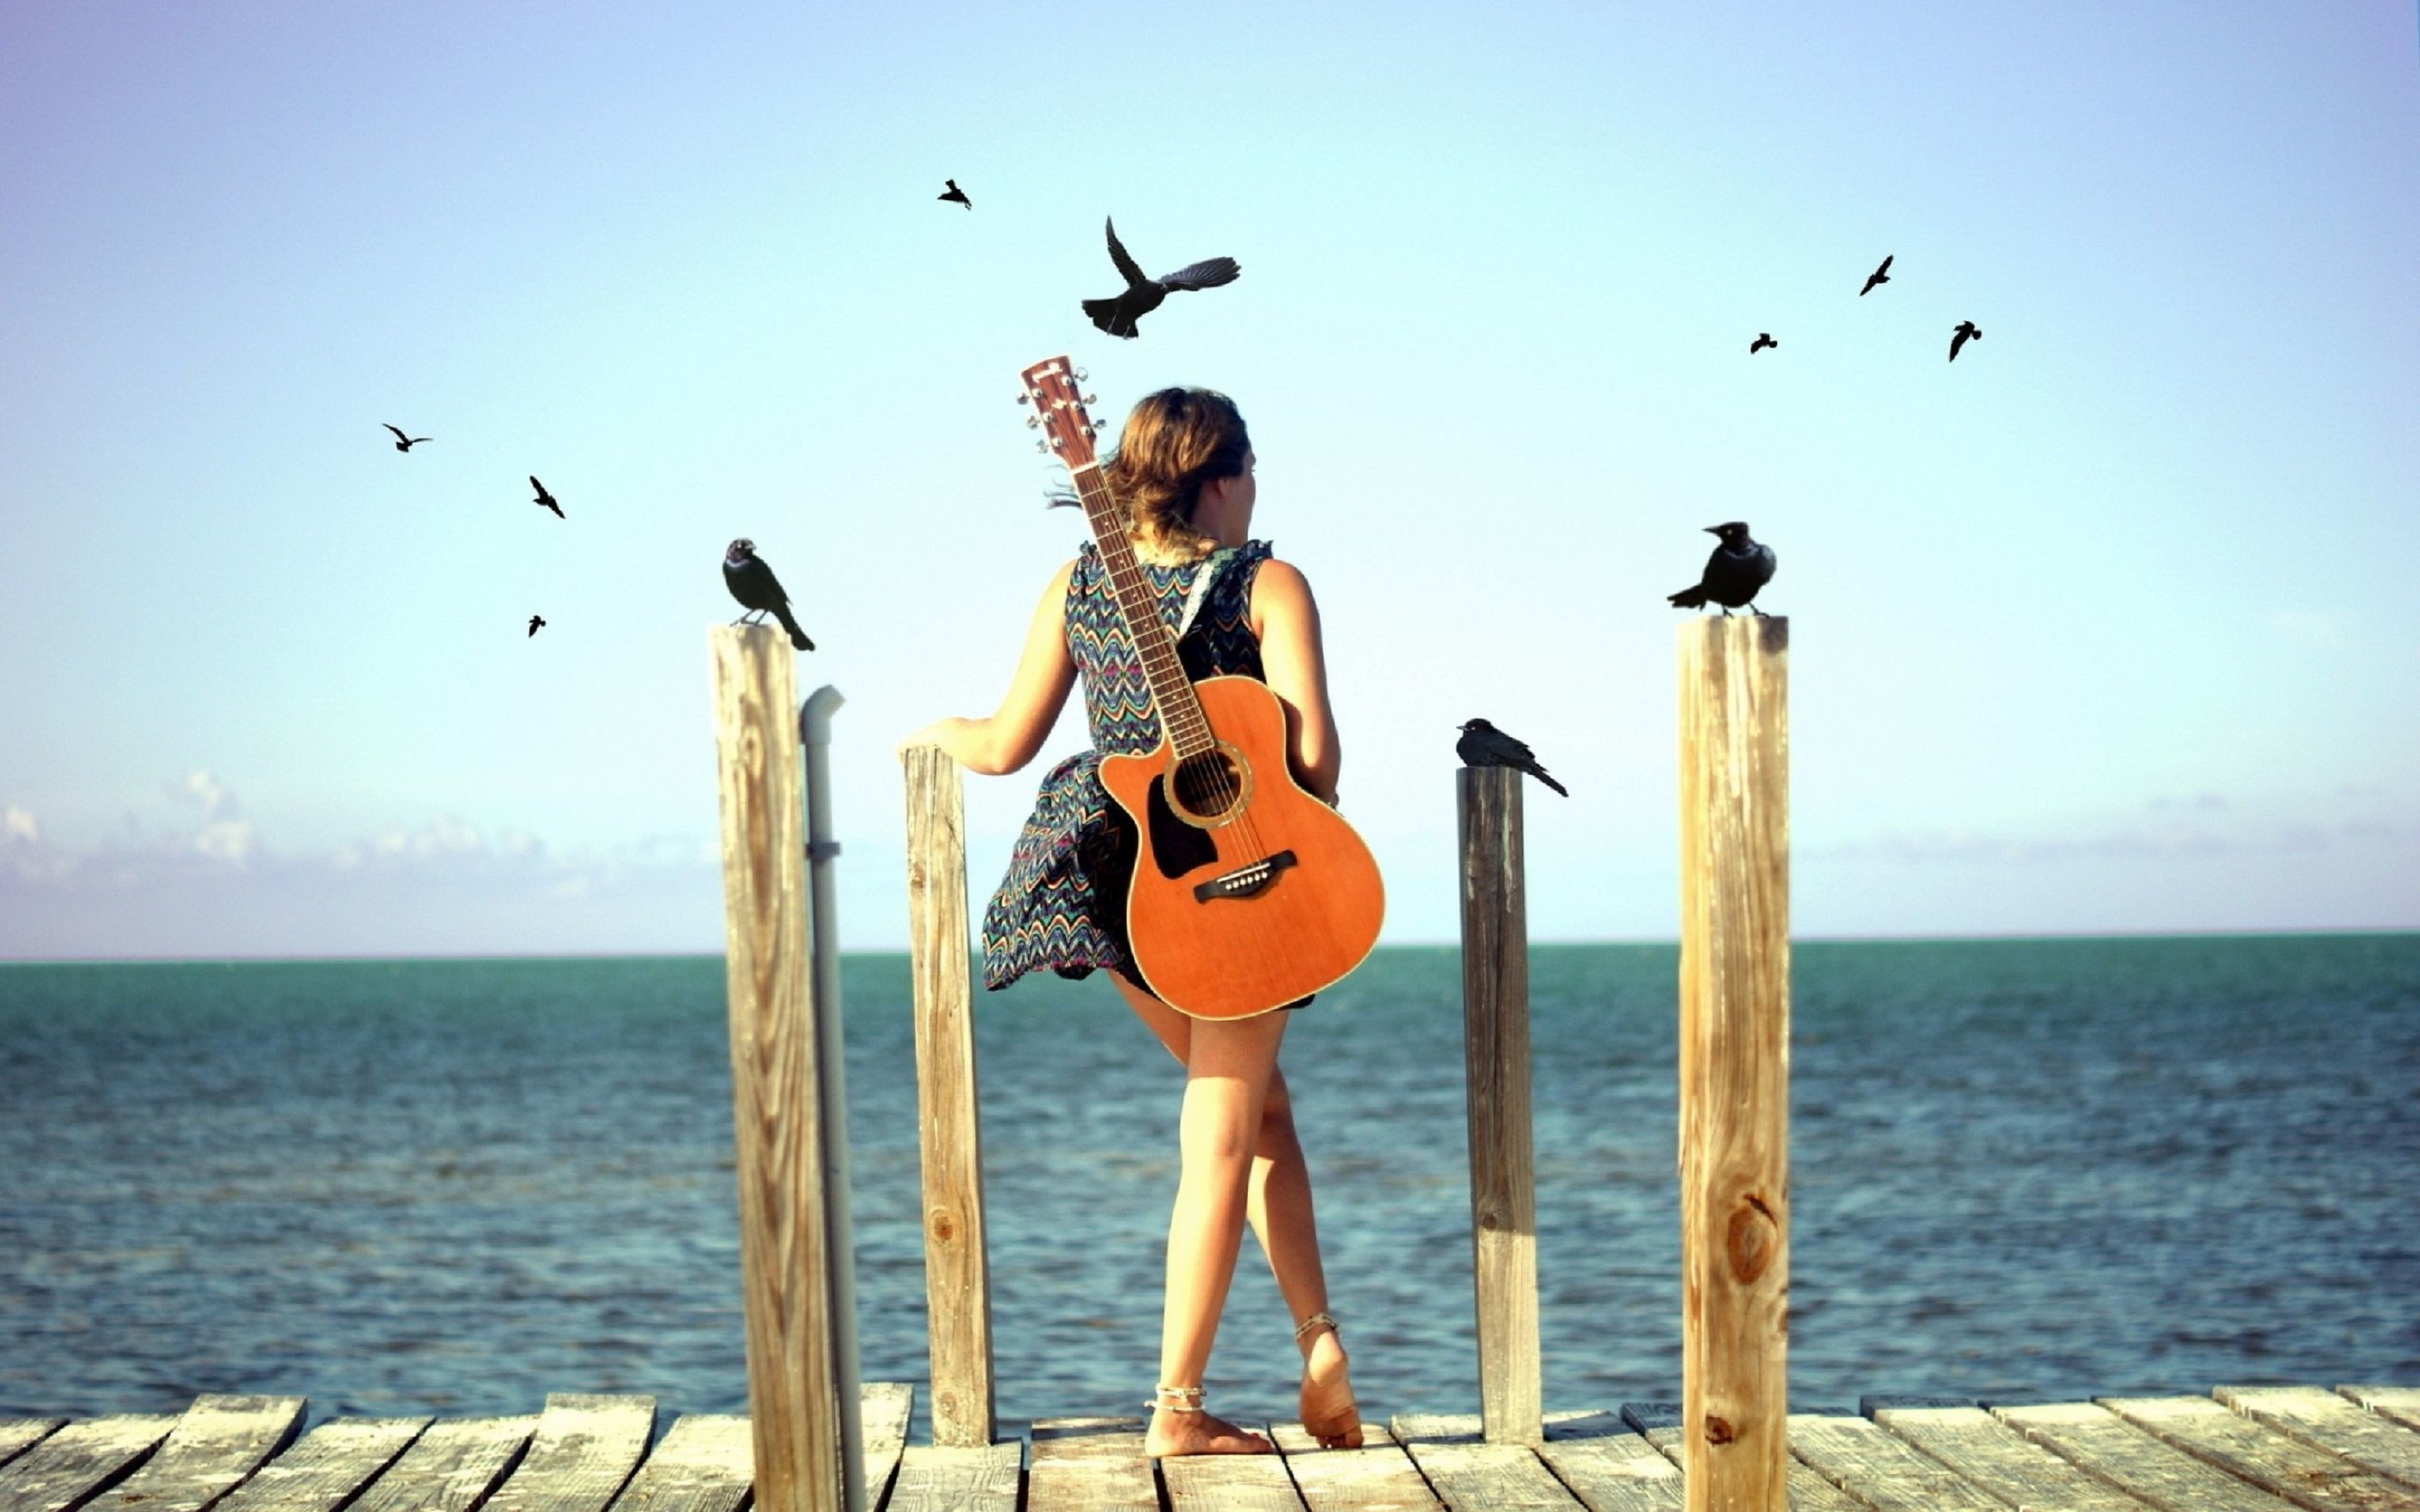 Res: 2816x1760, Cute Stylish Girls with Guitar Wallpaper